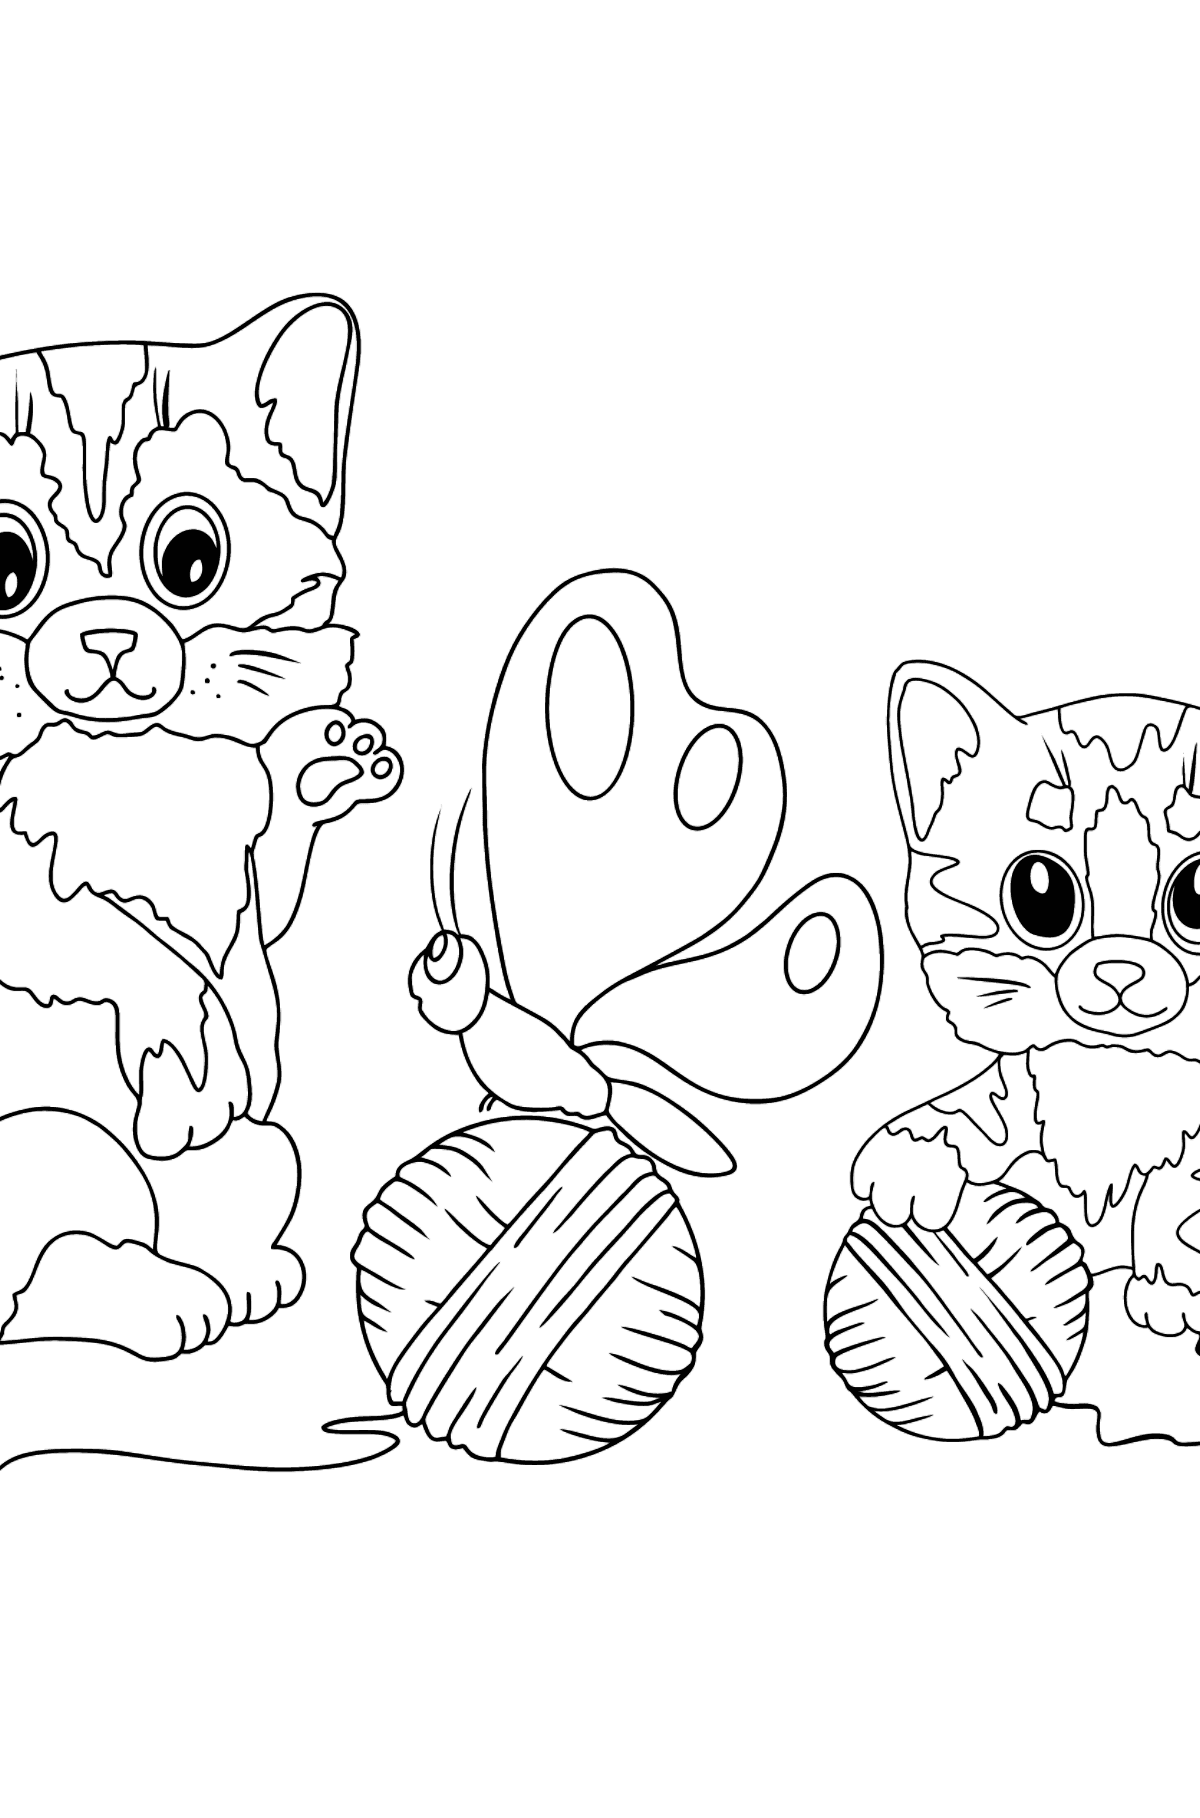 Coloring Page - Kittens are Playing with Threads - Coloring Pages for Kids